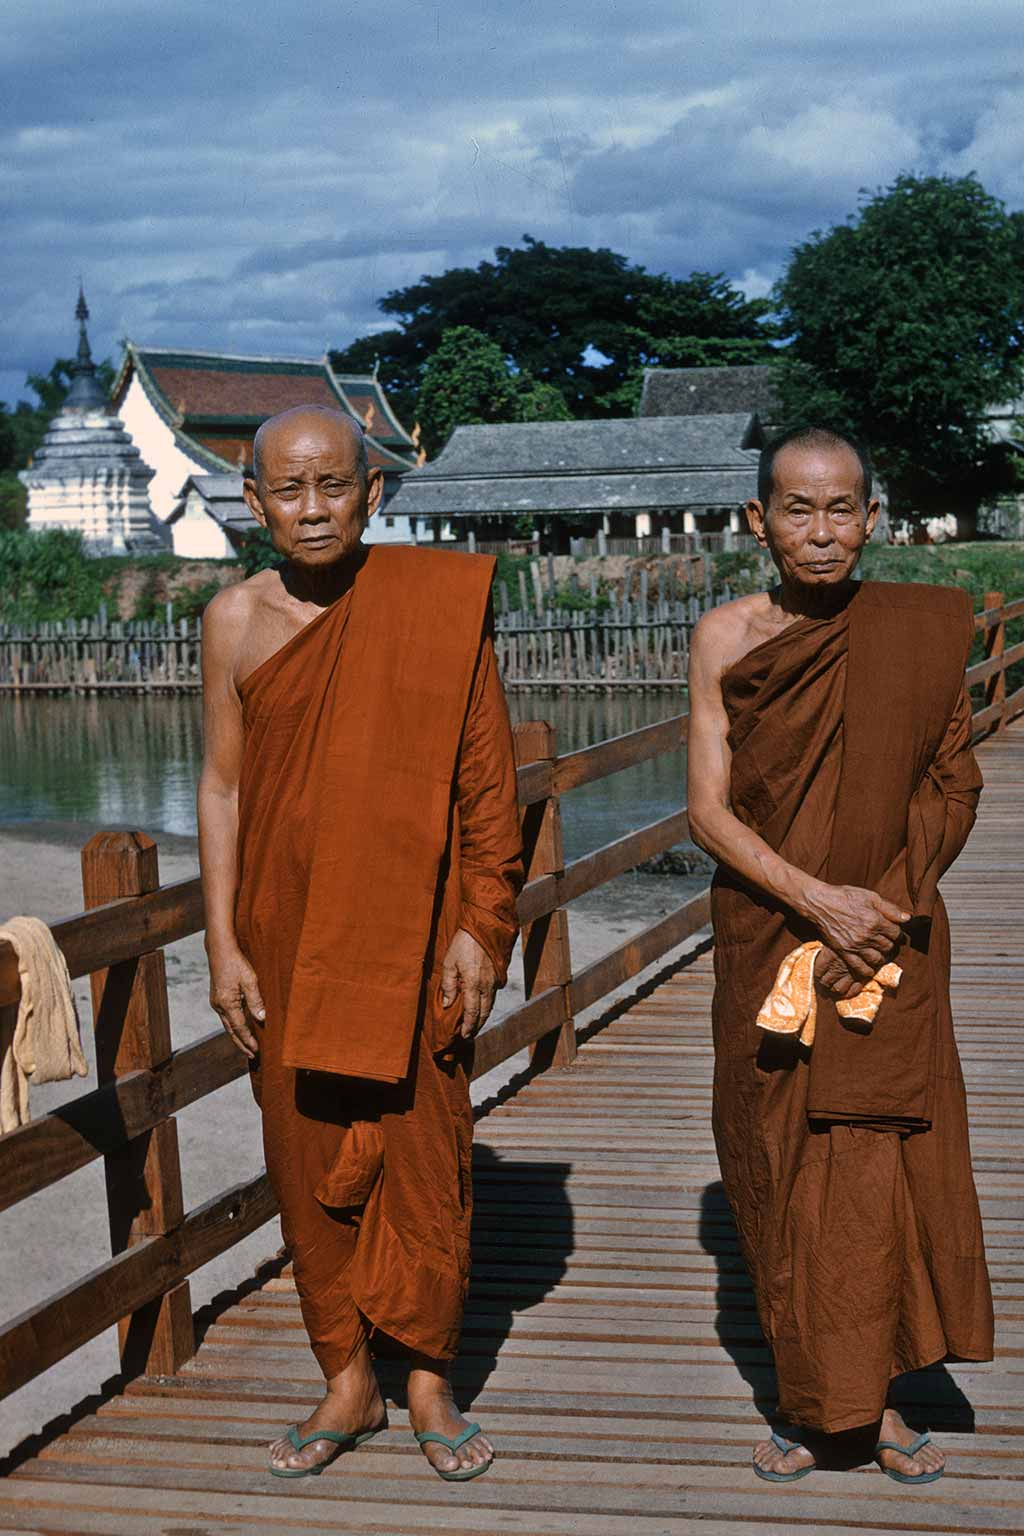 Two monks (orange robe on left, brown robe on right) pose on a bridge in Thailand.